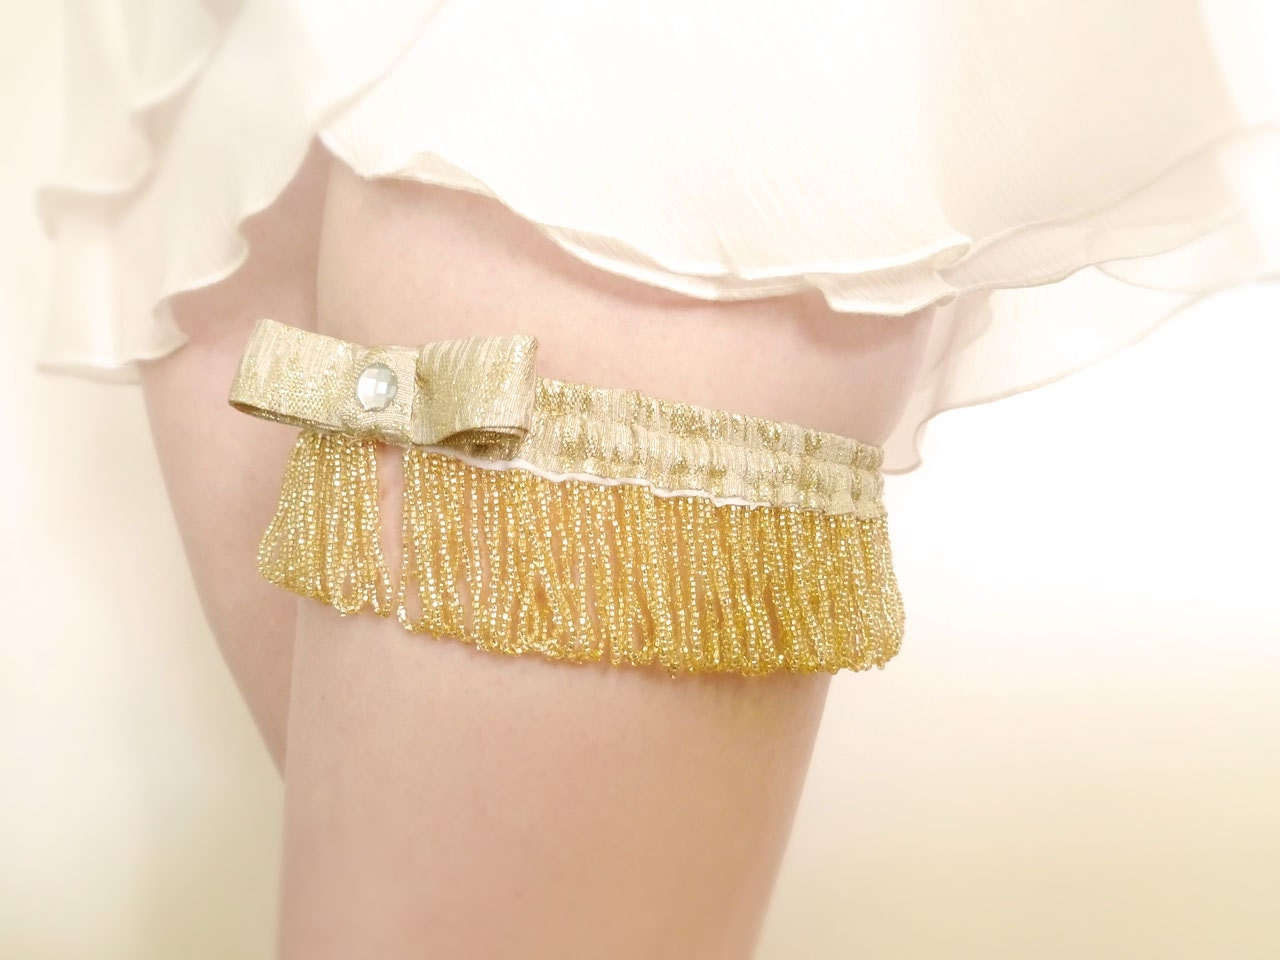 Gatsby bridal garter golden pearls and lamé OOAK by Jye, Hand-made in France - Joliejye